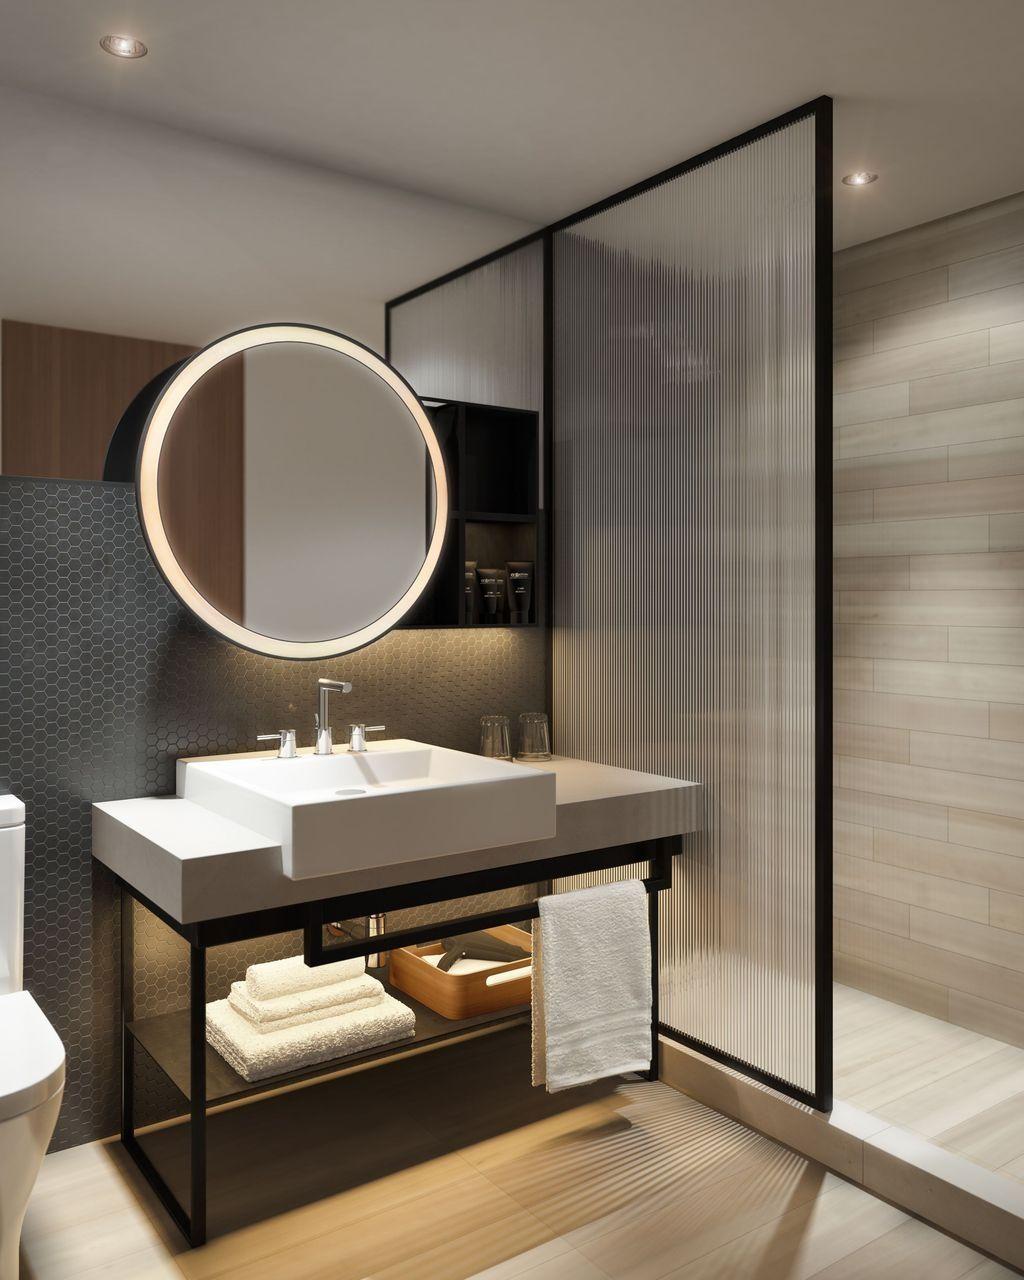 46 Popular Bathroom Mirror Design Ideas For Any Bathroom Model